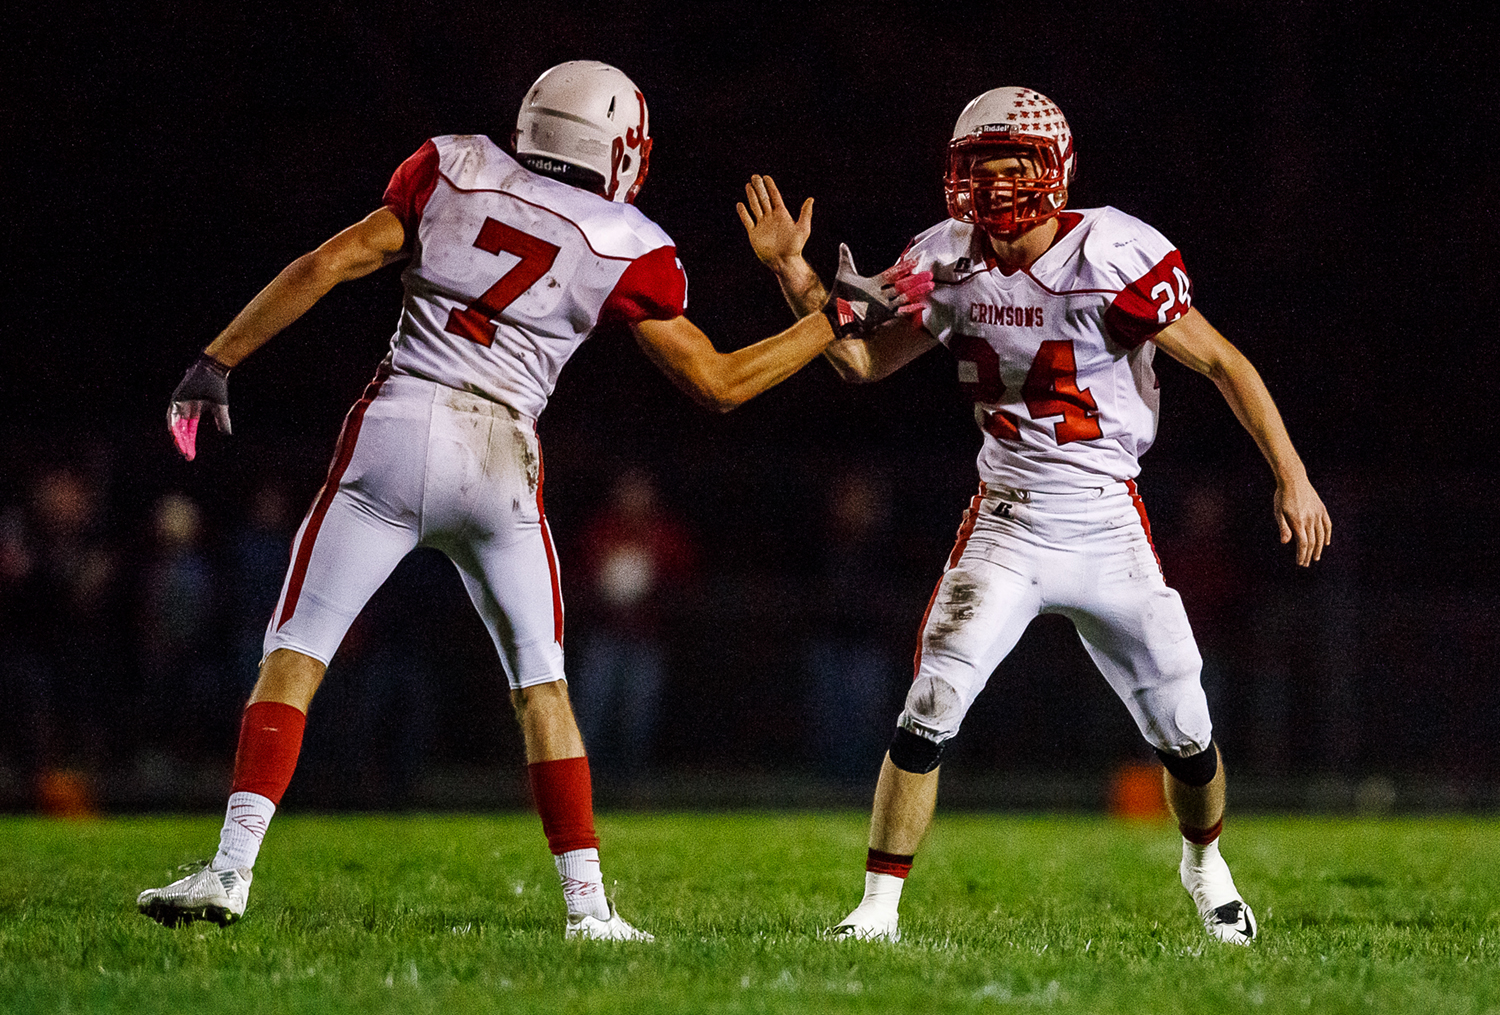 Jacksonville's Dillon Pennell (24) is fired up with Jacksonville's Walt Miller (7) after bringing down Rochester quarterback Danny Zeigler (10) during the first half at Rocket Booster Field, Friday, Oct. 10, 2014, in Rochester, Ill. Justin L. Fowler/The State Journal-Register